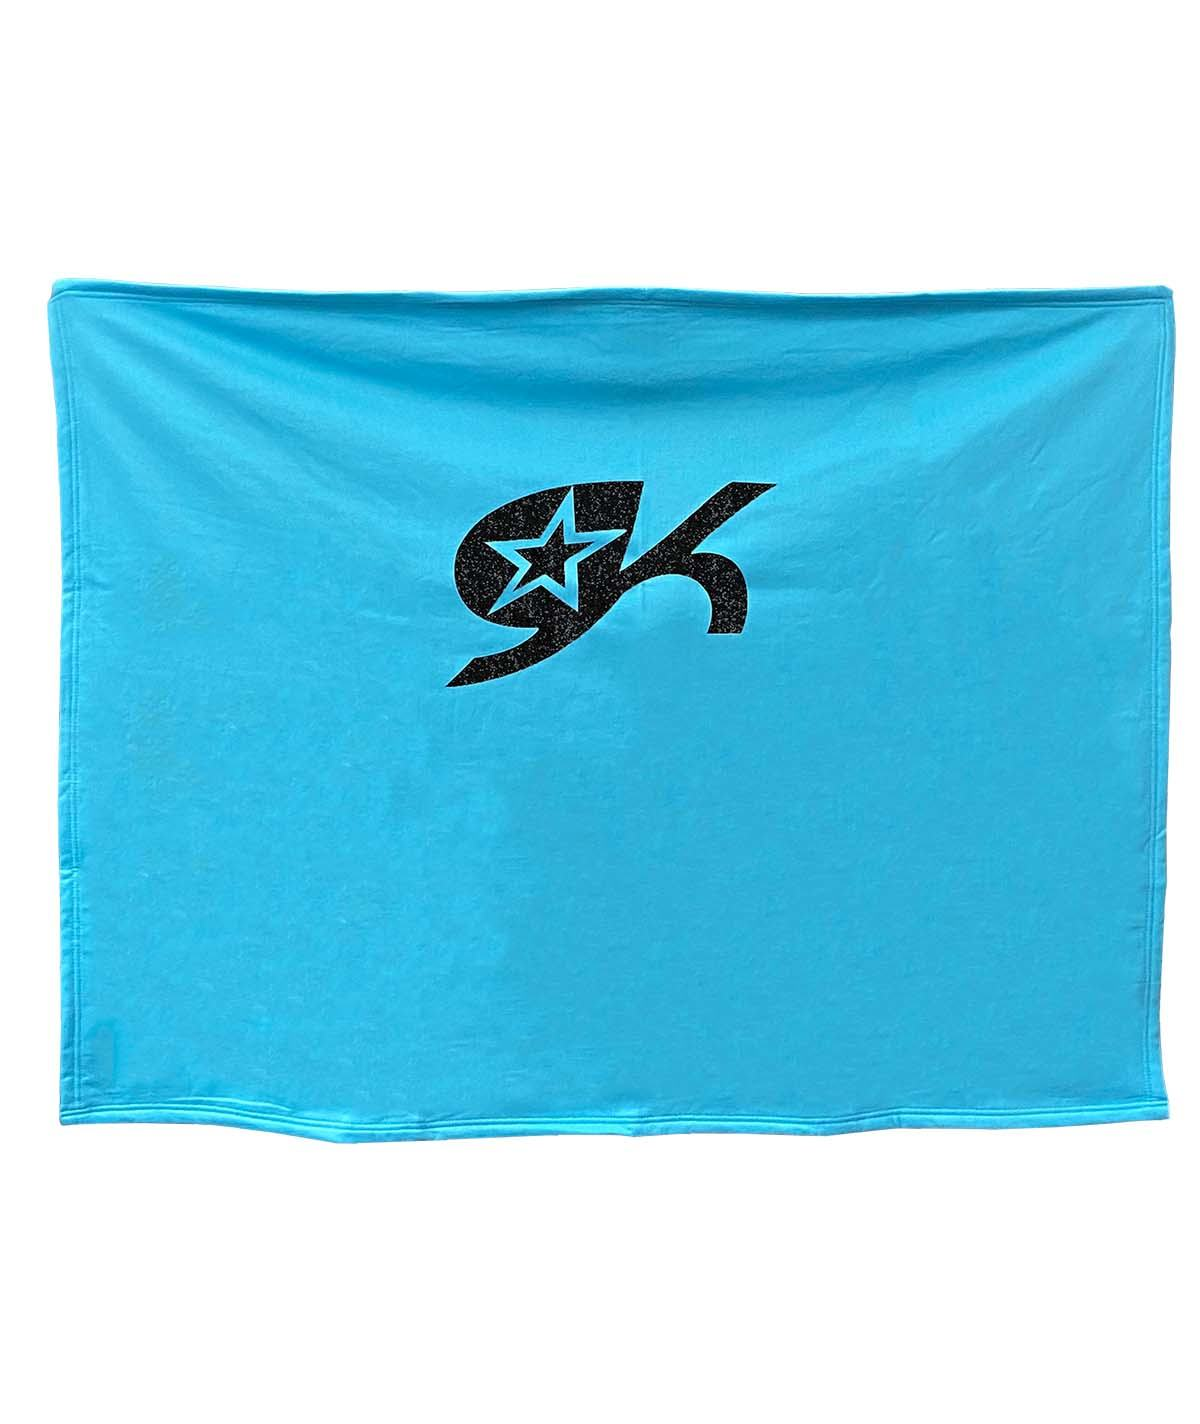 GK All Star Pro Weave Sweatshirt Blanket